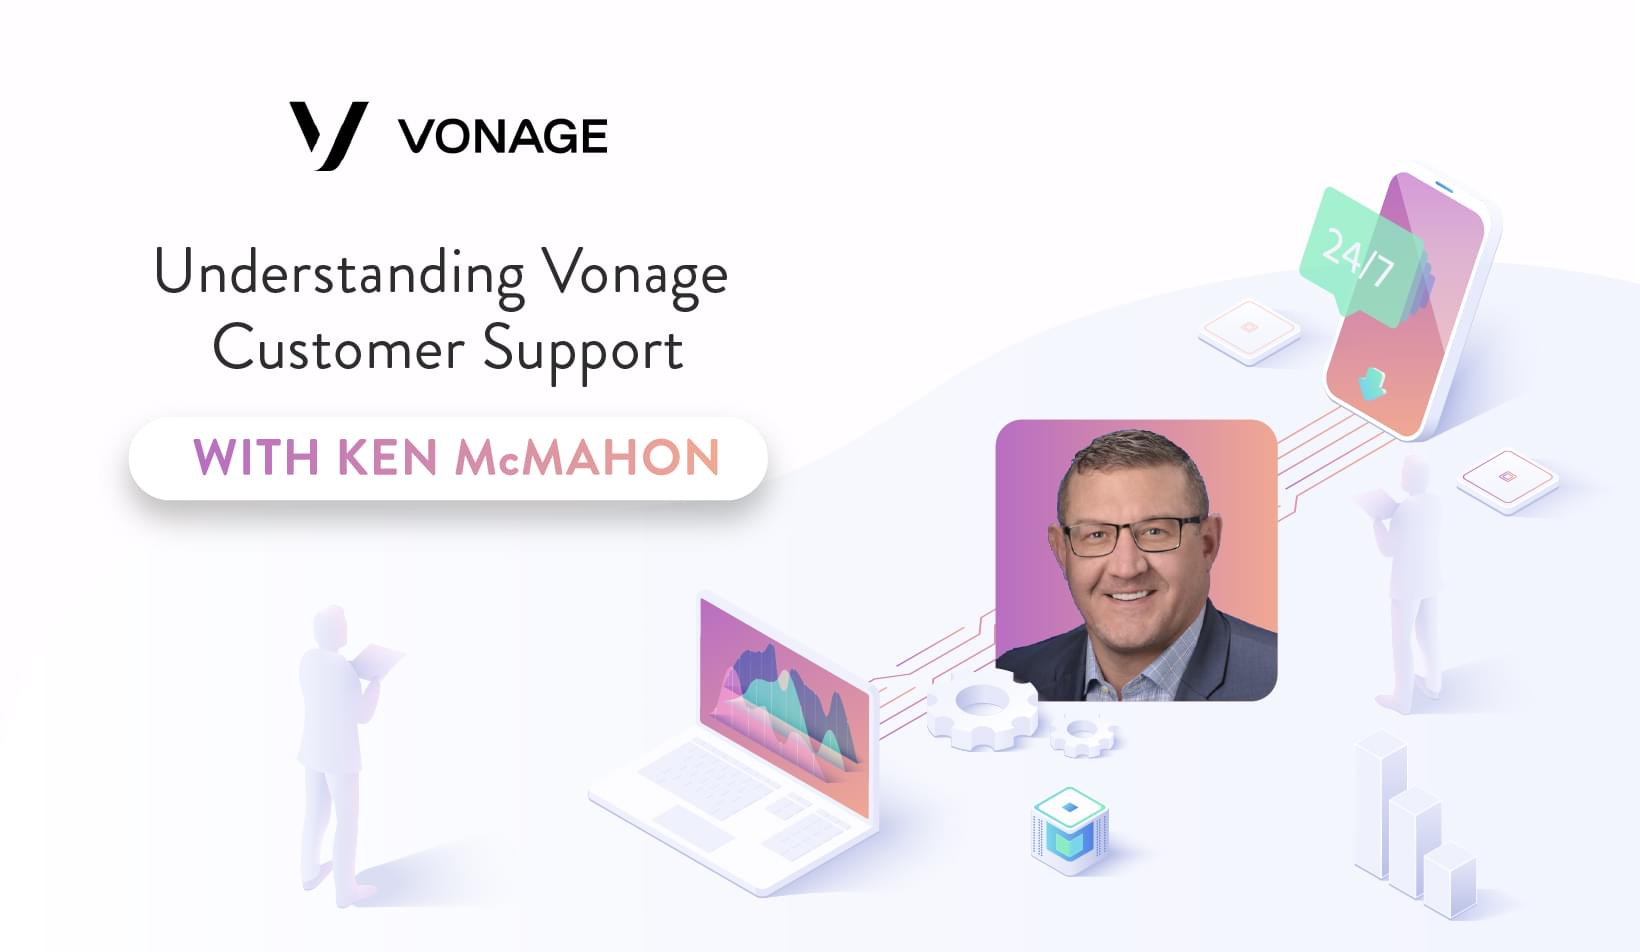 AMA: Ken McMahon Helps Us Understand Vonage Customer Support